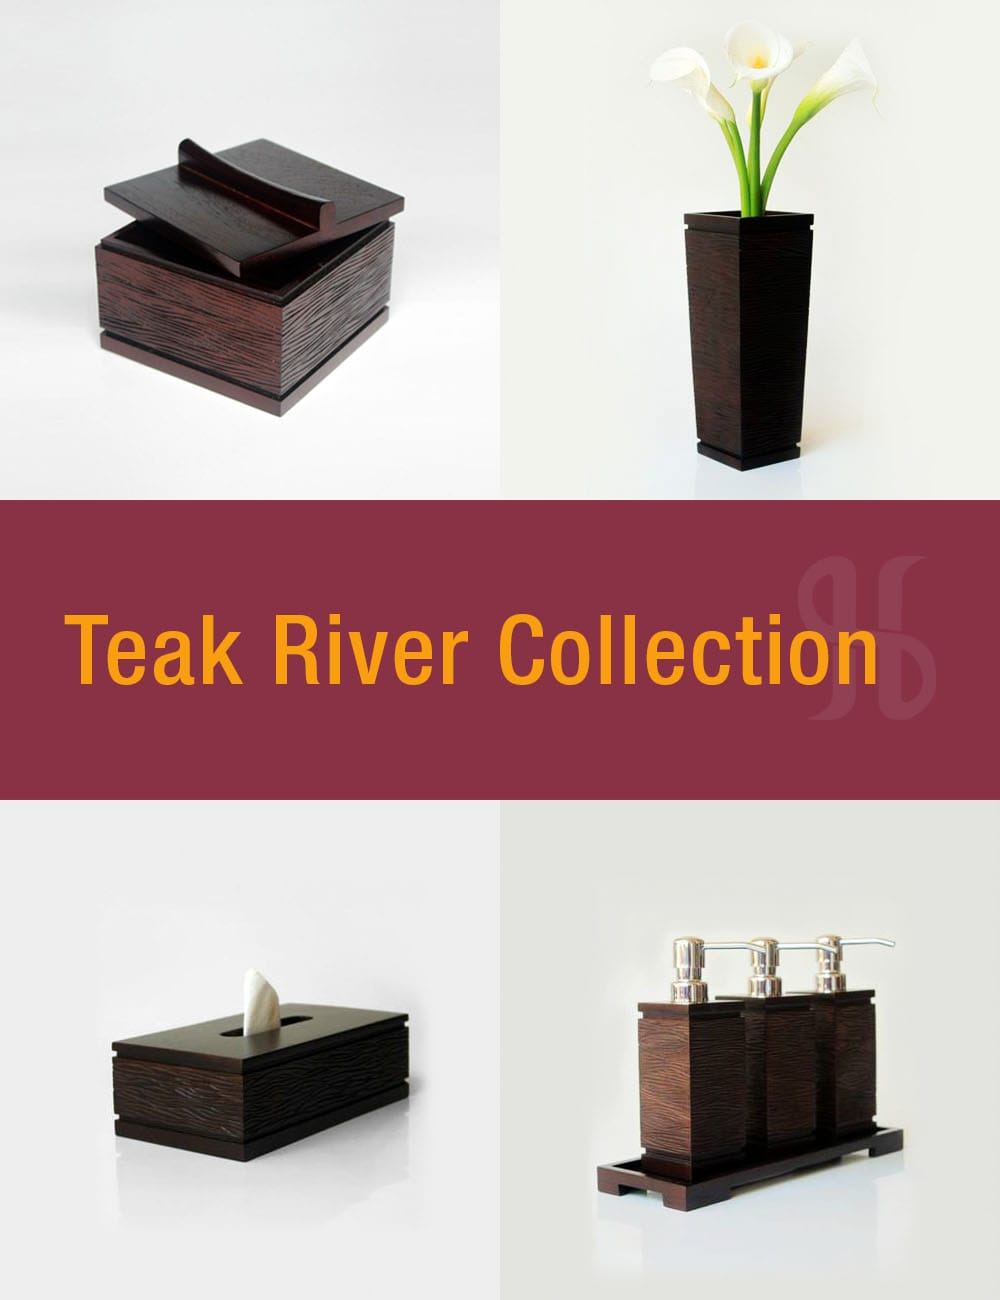 Teak River Collection